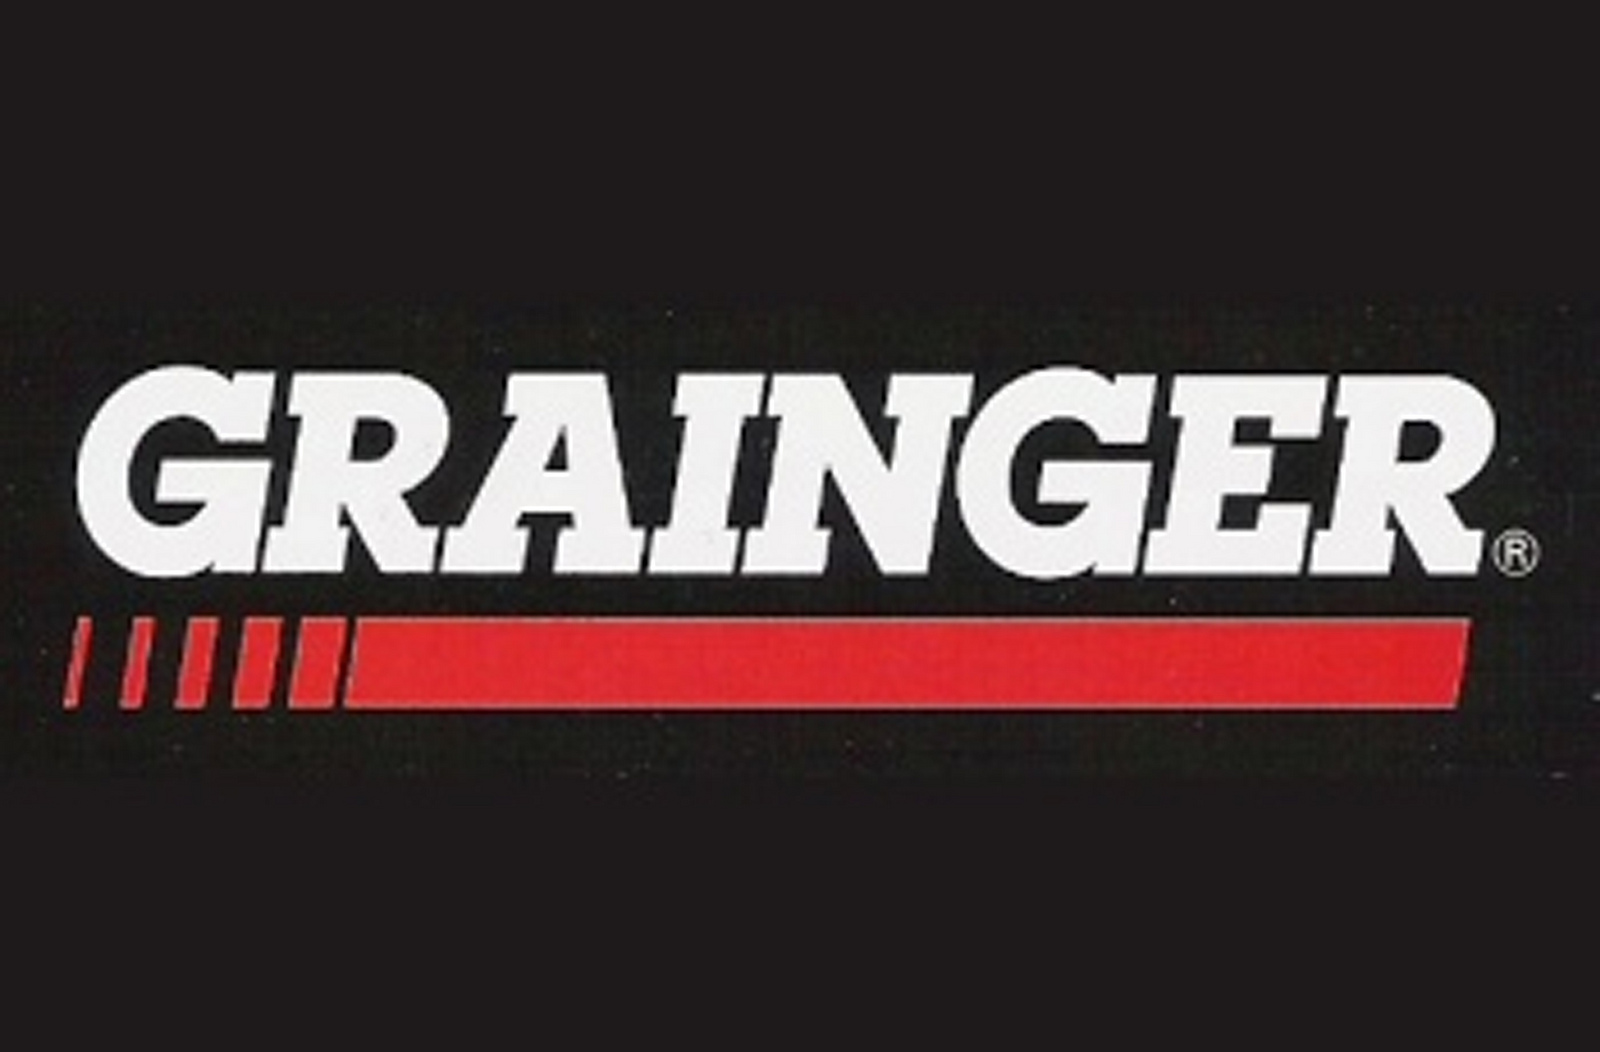 Grainger Promotional Merchandise. Catalog for Grainger logo shirts, hats, and other promotional and collateral material.